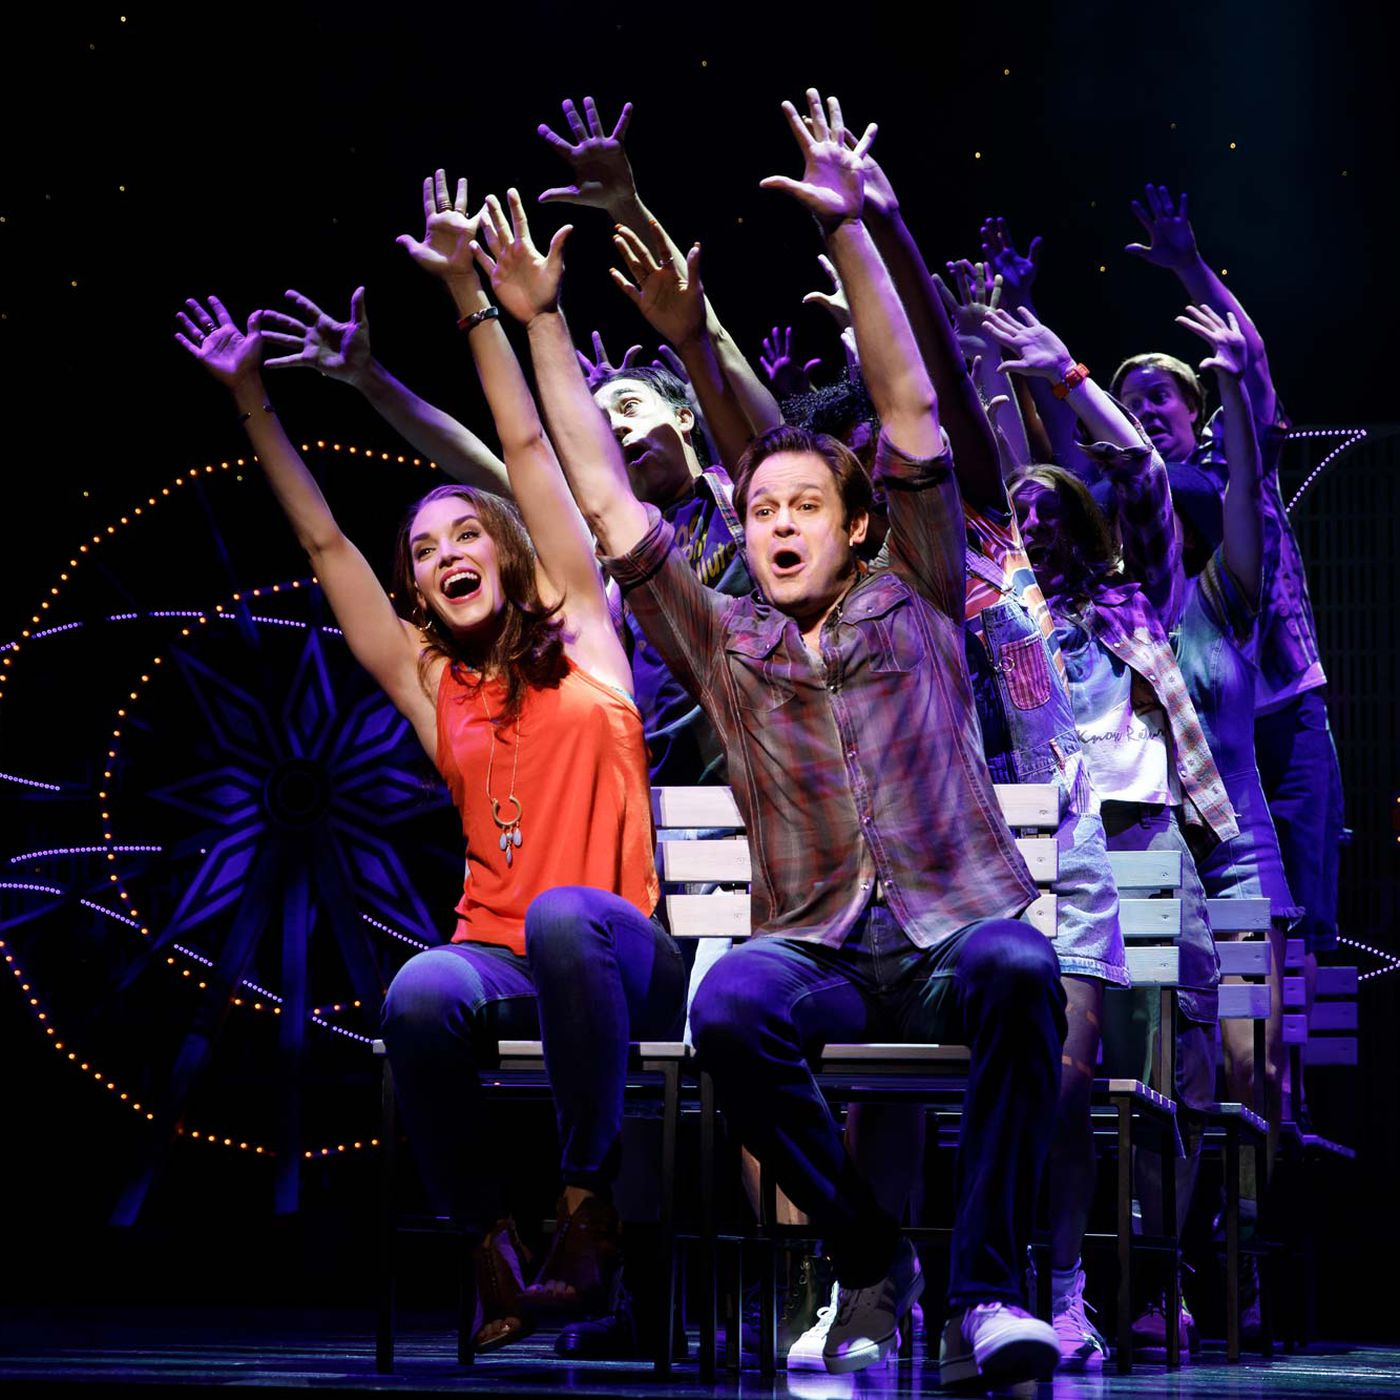 Review: Gettin' the Band Back Together is a joyous musical